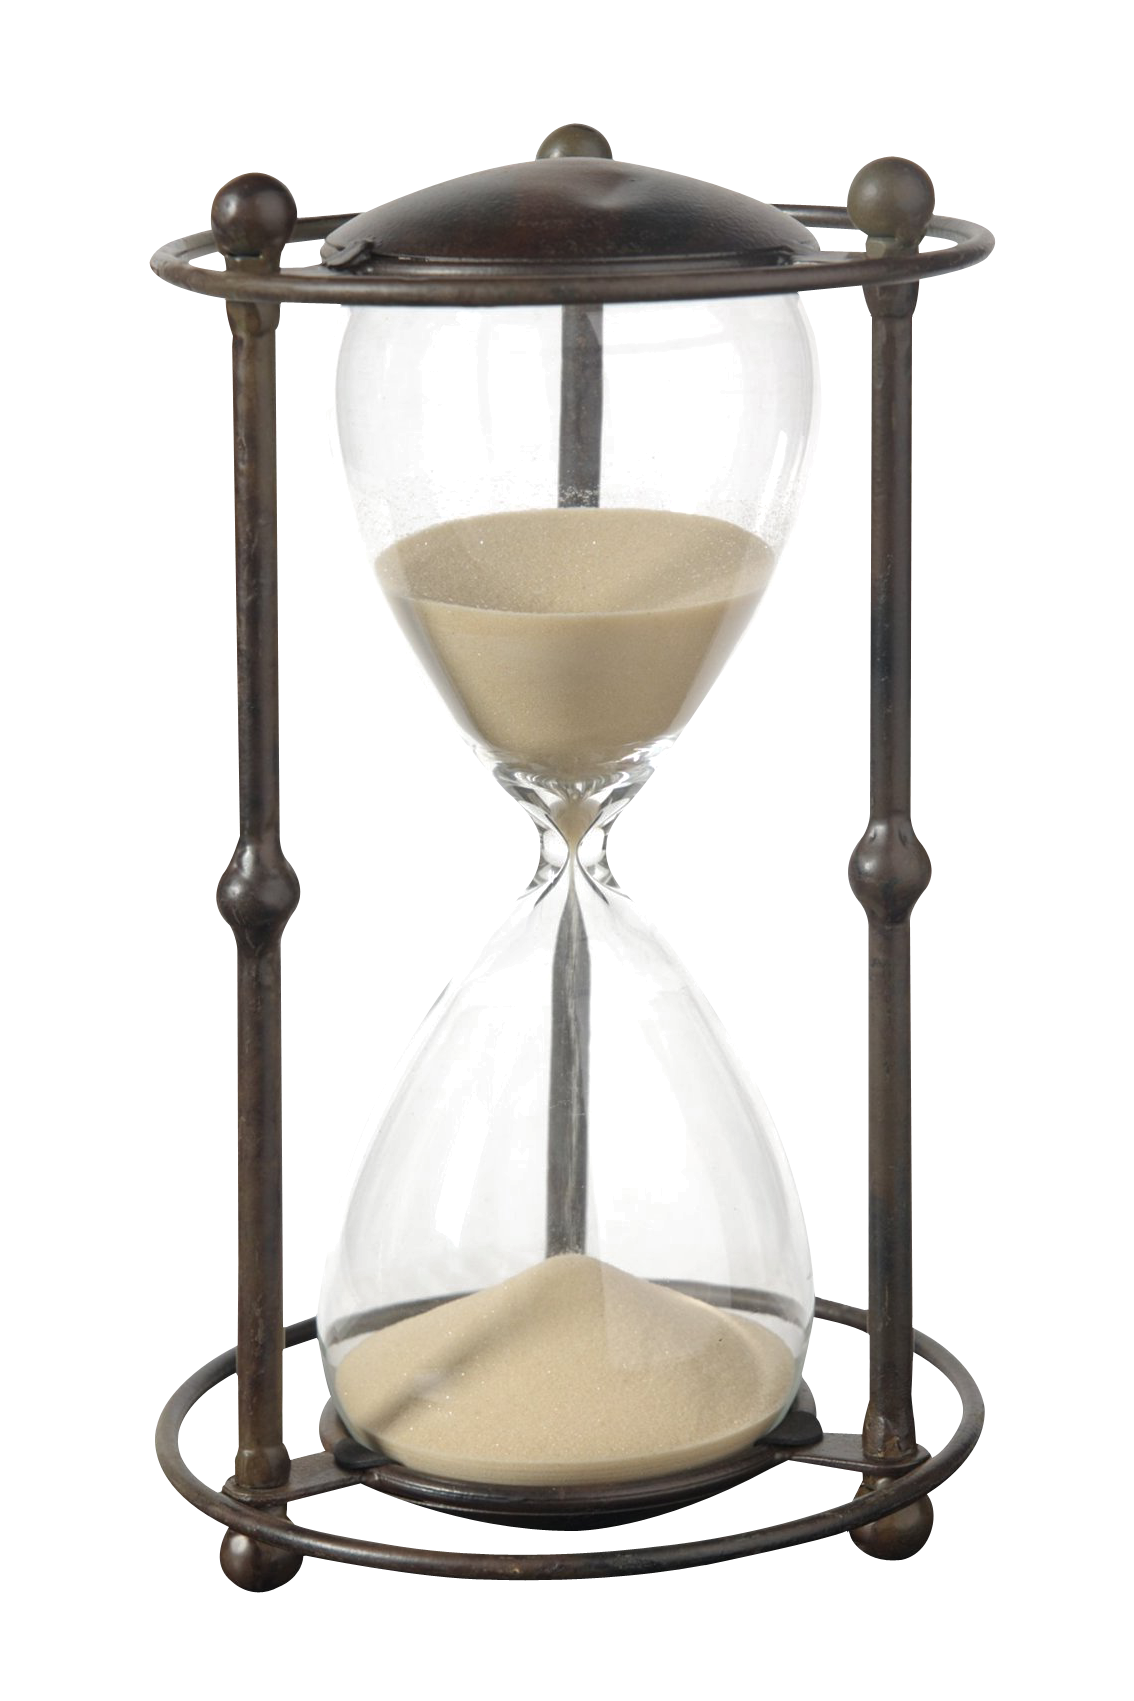 Hourglass Png Image Hourglass Png Images Old Watches